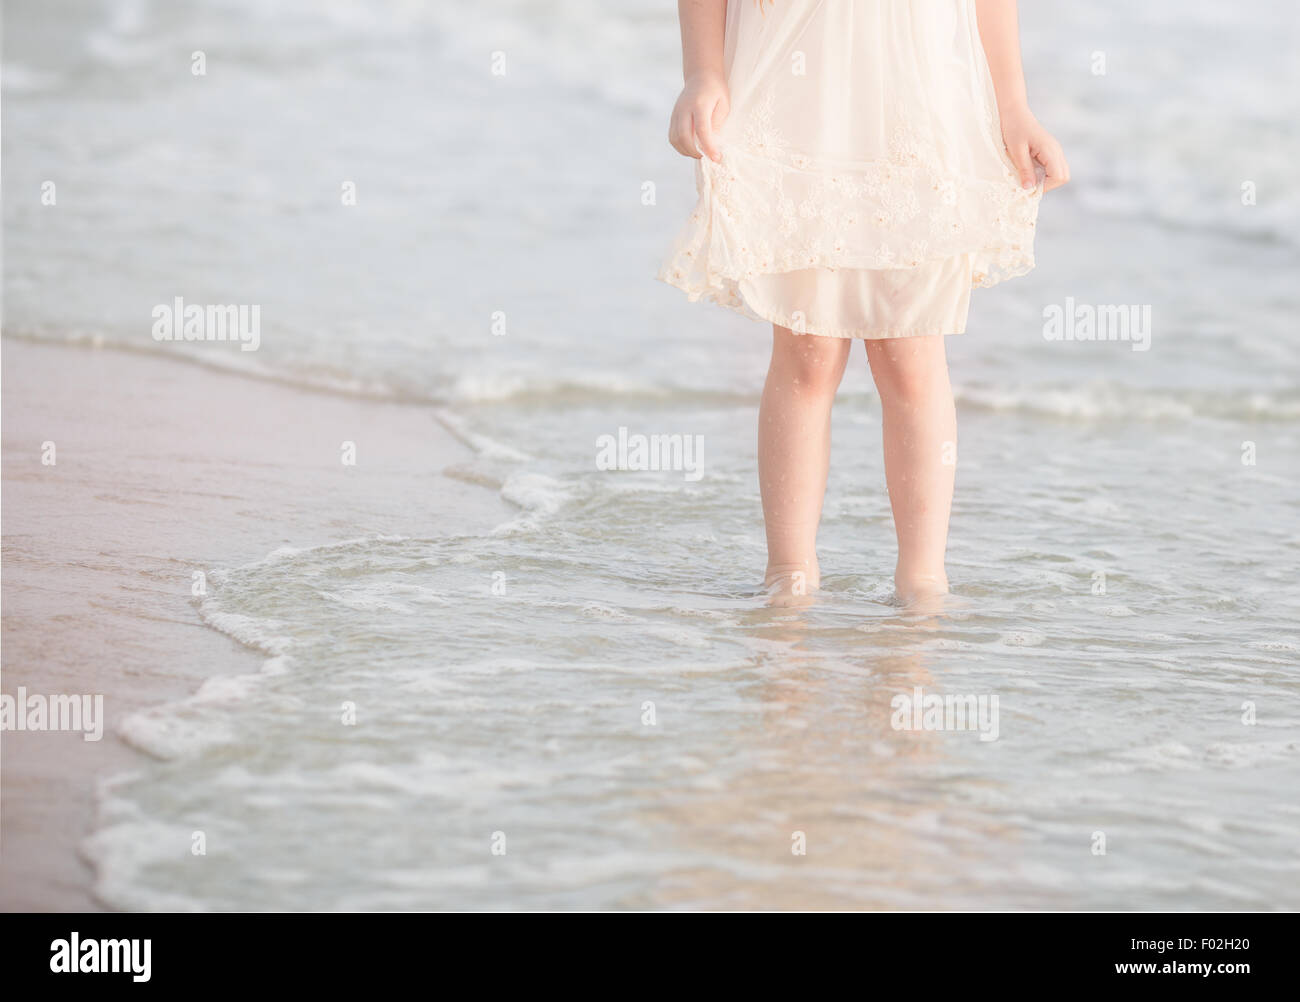 Girl standing in the surf at the beach - Stock Image